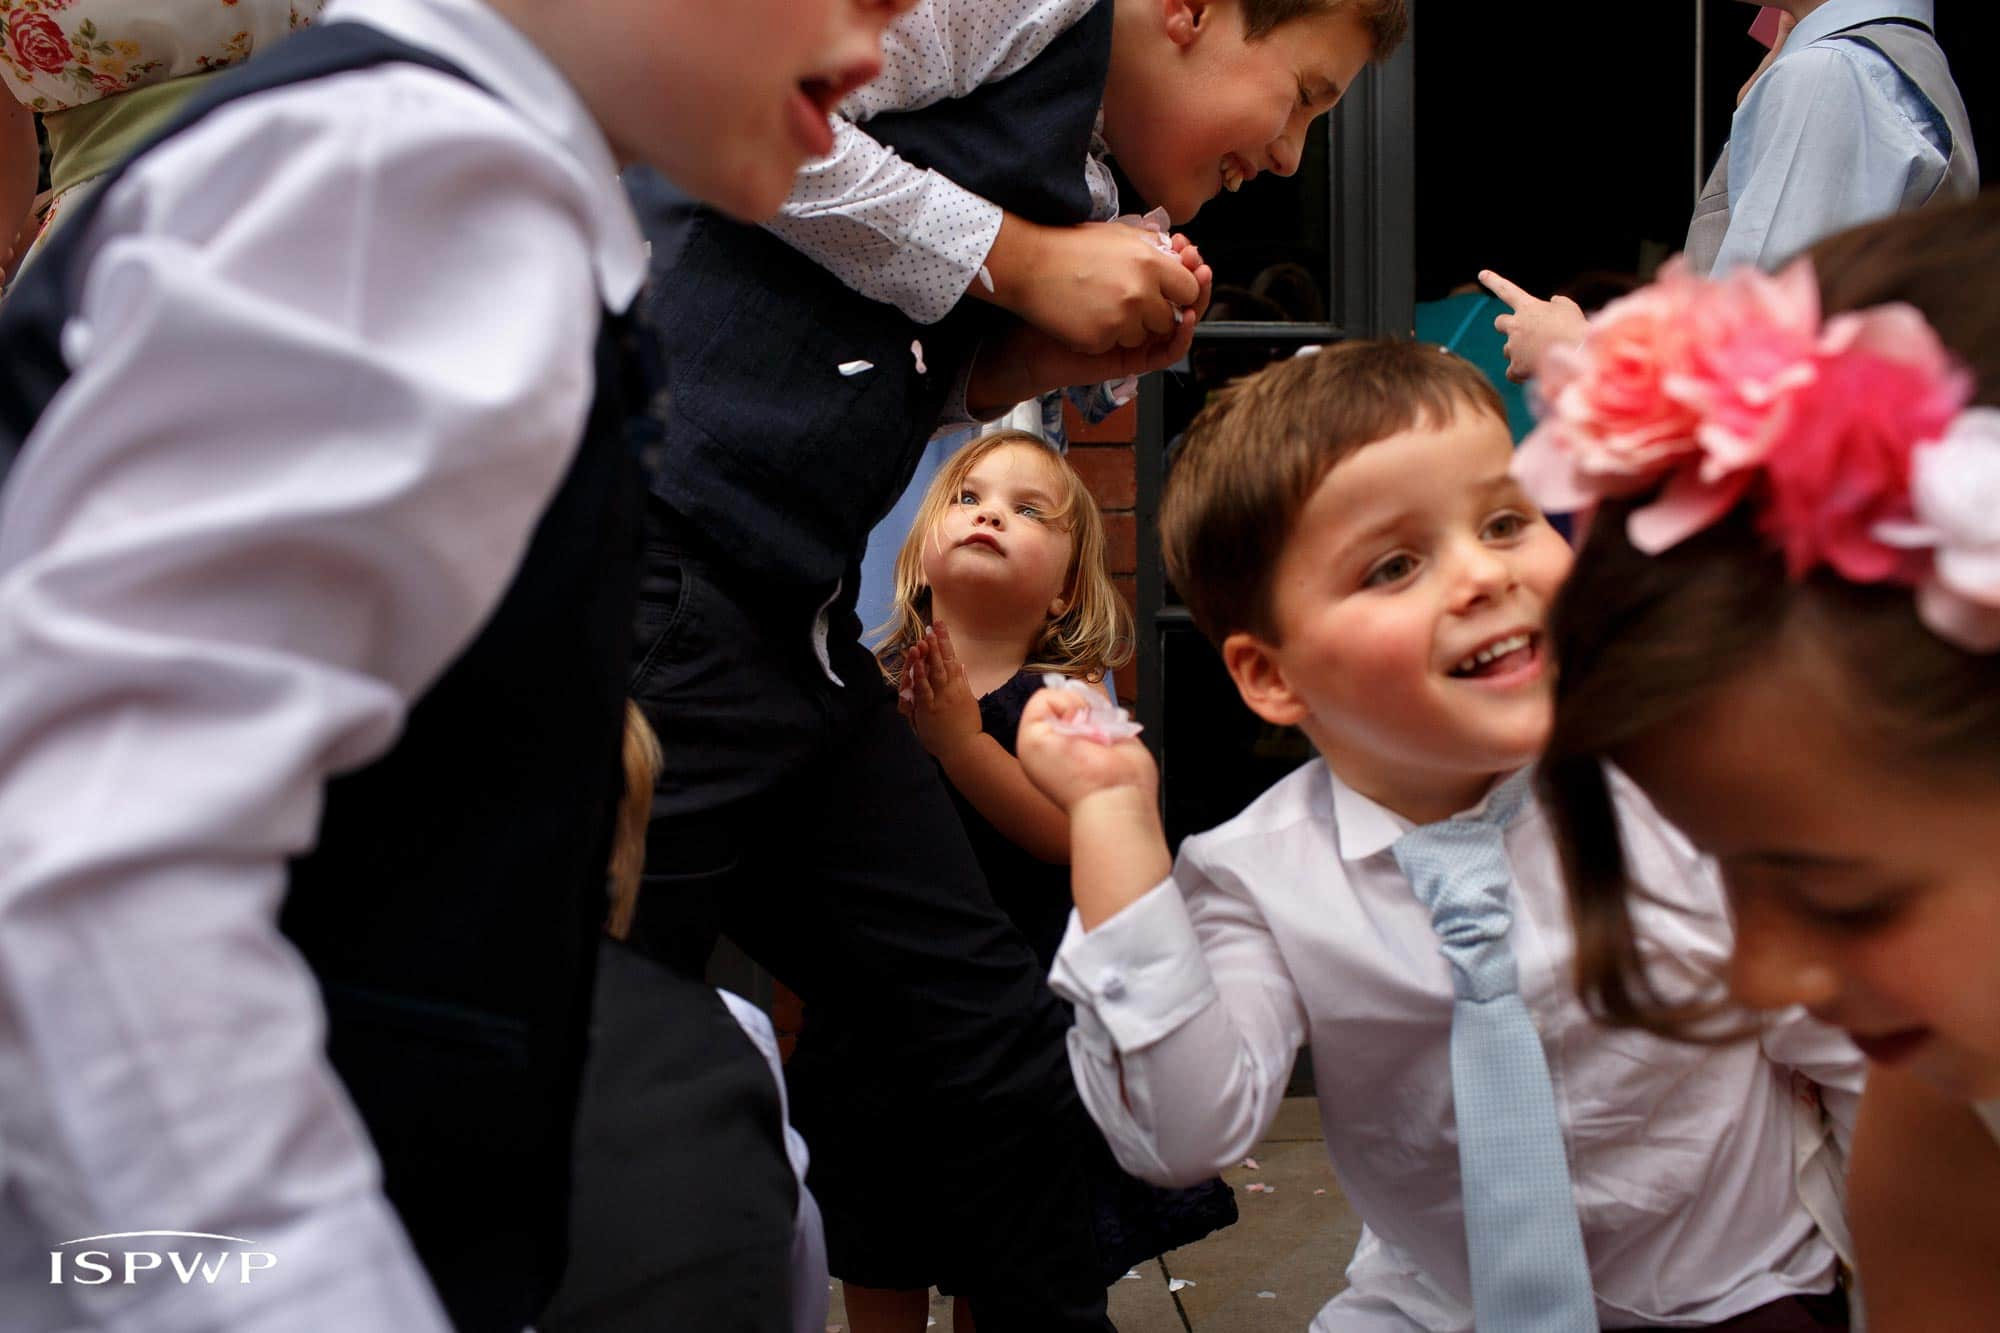 Award winning wedding photograph of children playing with confetti at great john street wedding